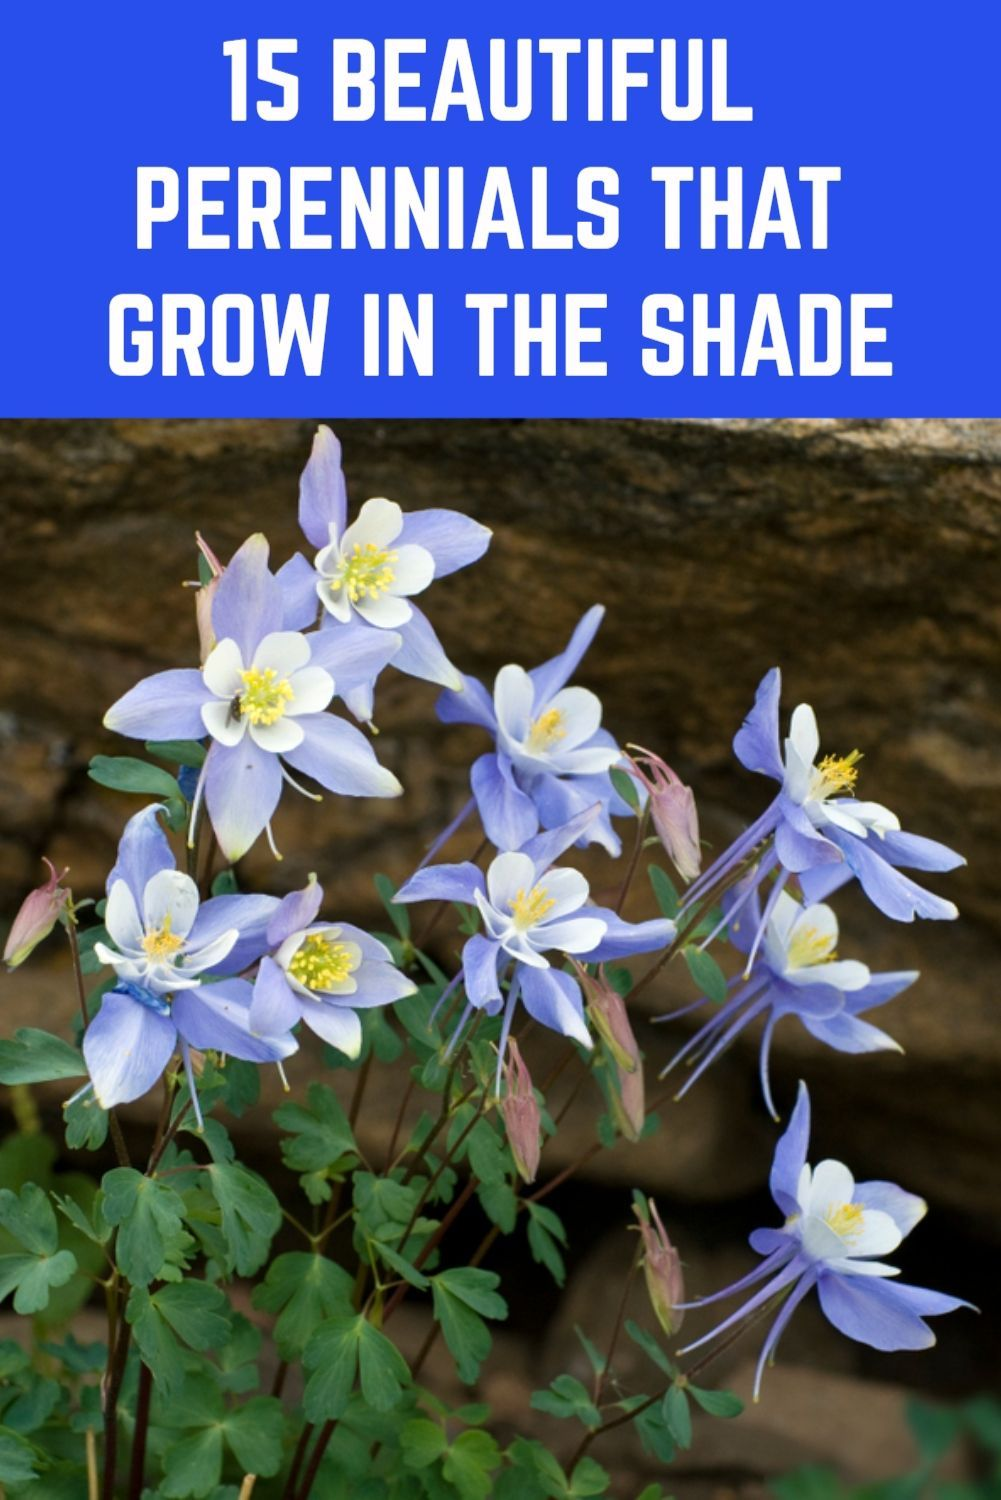 15 Beautiful Perennials That Grow In The Shade